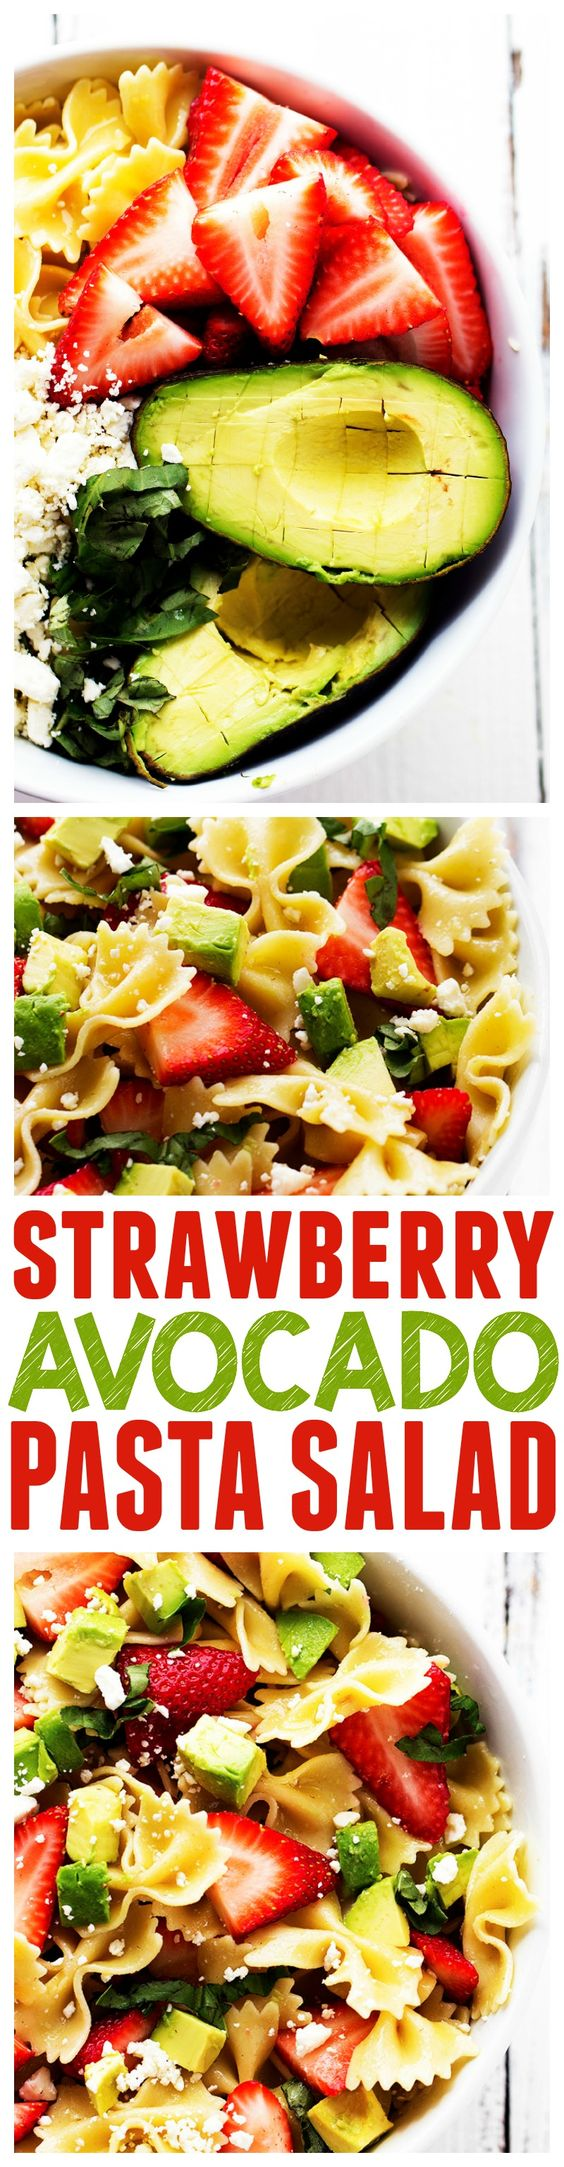 Strawberry Avocado Pasta Salad Recipe via The Recipe Critic - This Strawberry Avocado Pasta Salads is one unforgettable salad!!! Strawberries, Avocados, Basil and Feta Cheese come together to create the BEST pasta salad!! Easy Pasta Salad Recipes - The BEST Yummy Barbecue Side Dishes, Potluck Favorites and Summer Dinner Party Crowd Pleasers